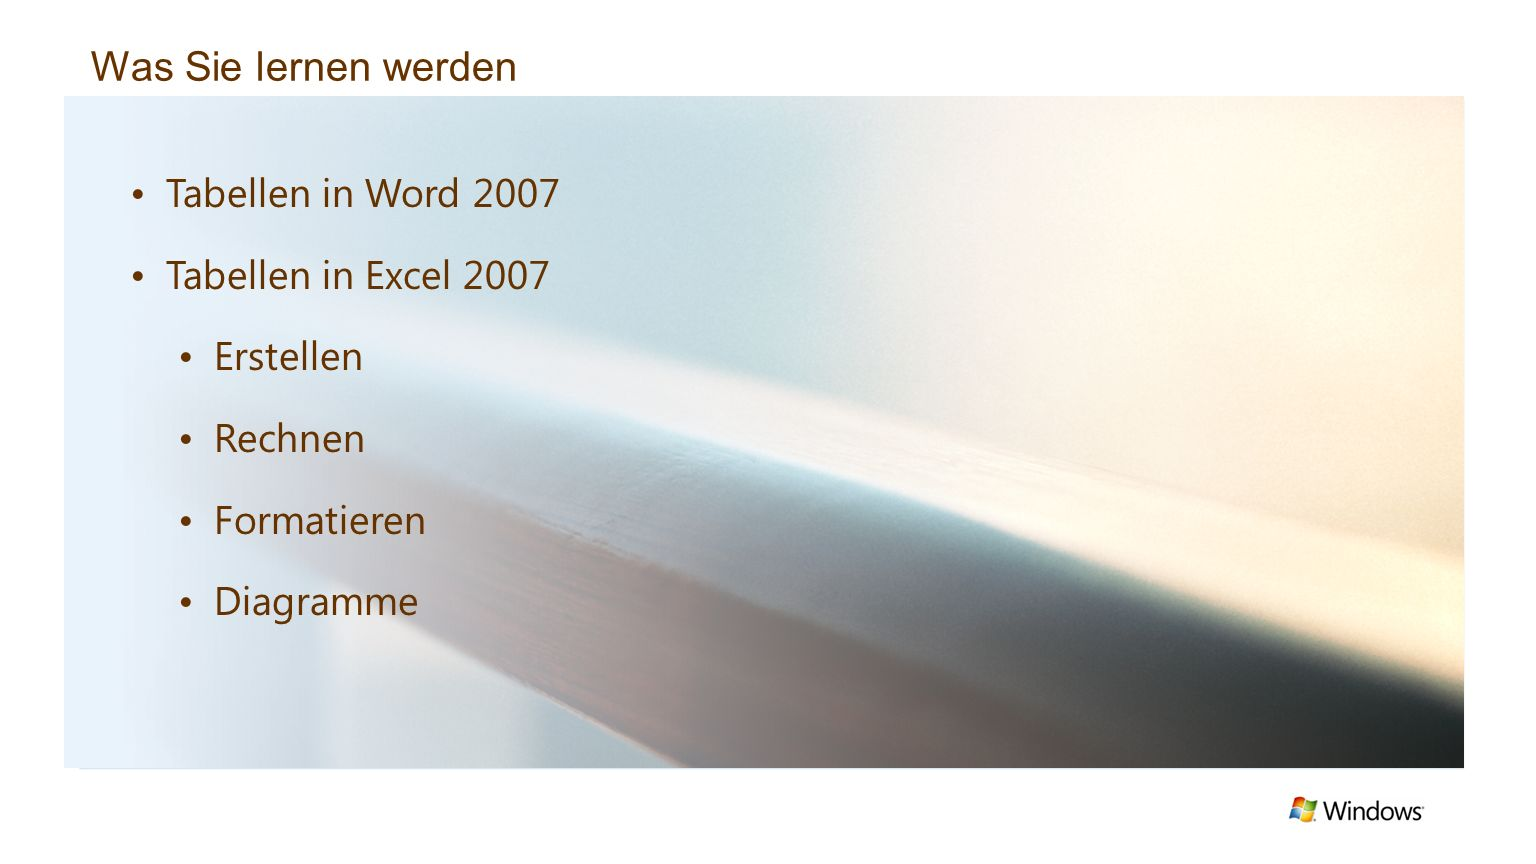 rechnen in word